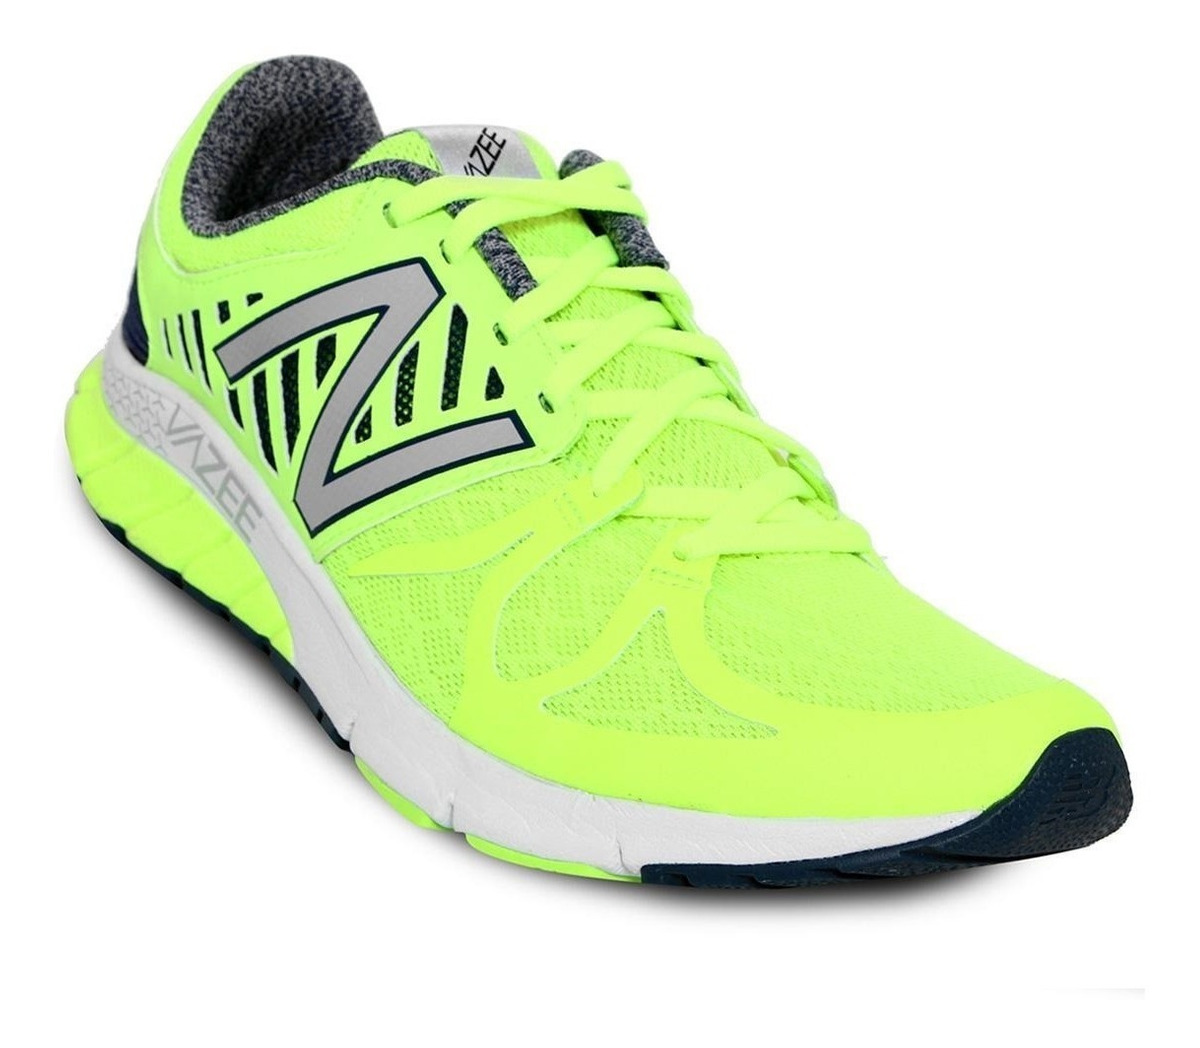 nouvelle arrivee a234c d51df New Balance Zapatilla Running Hombre Vazee Rush Verde Fluo